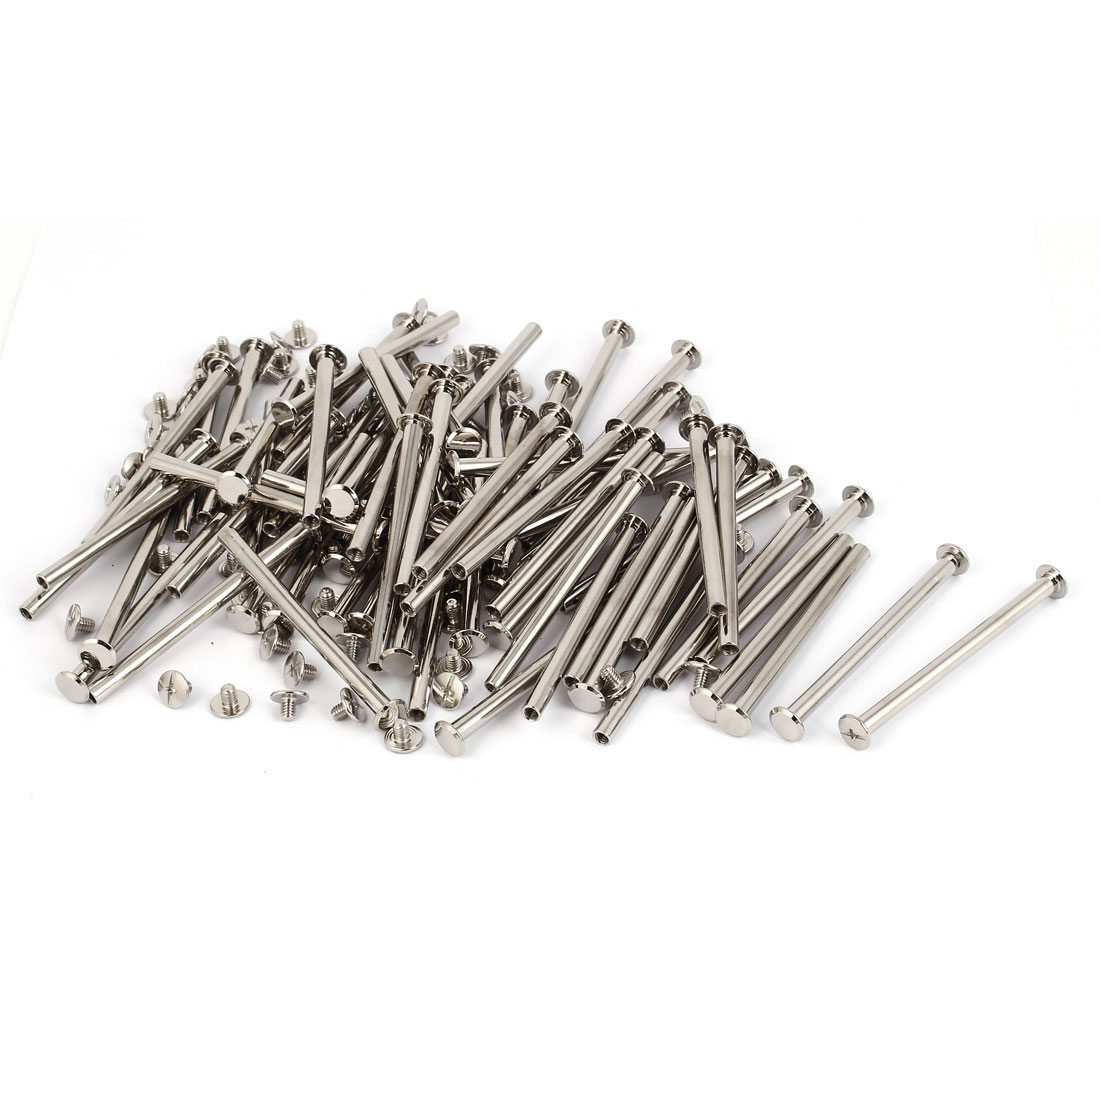 Scrapbook Photo Albums Binding Chicago Screws Posts M5 x 70mm 100 Pcs